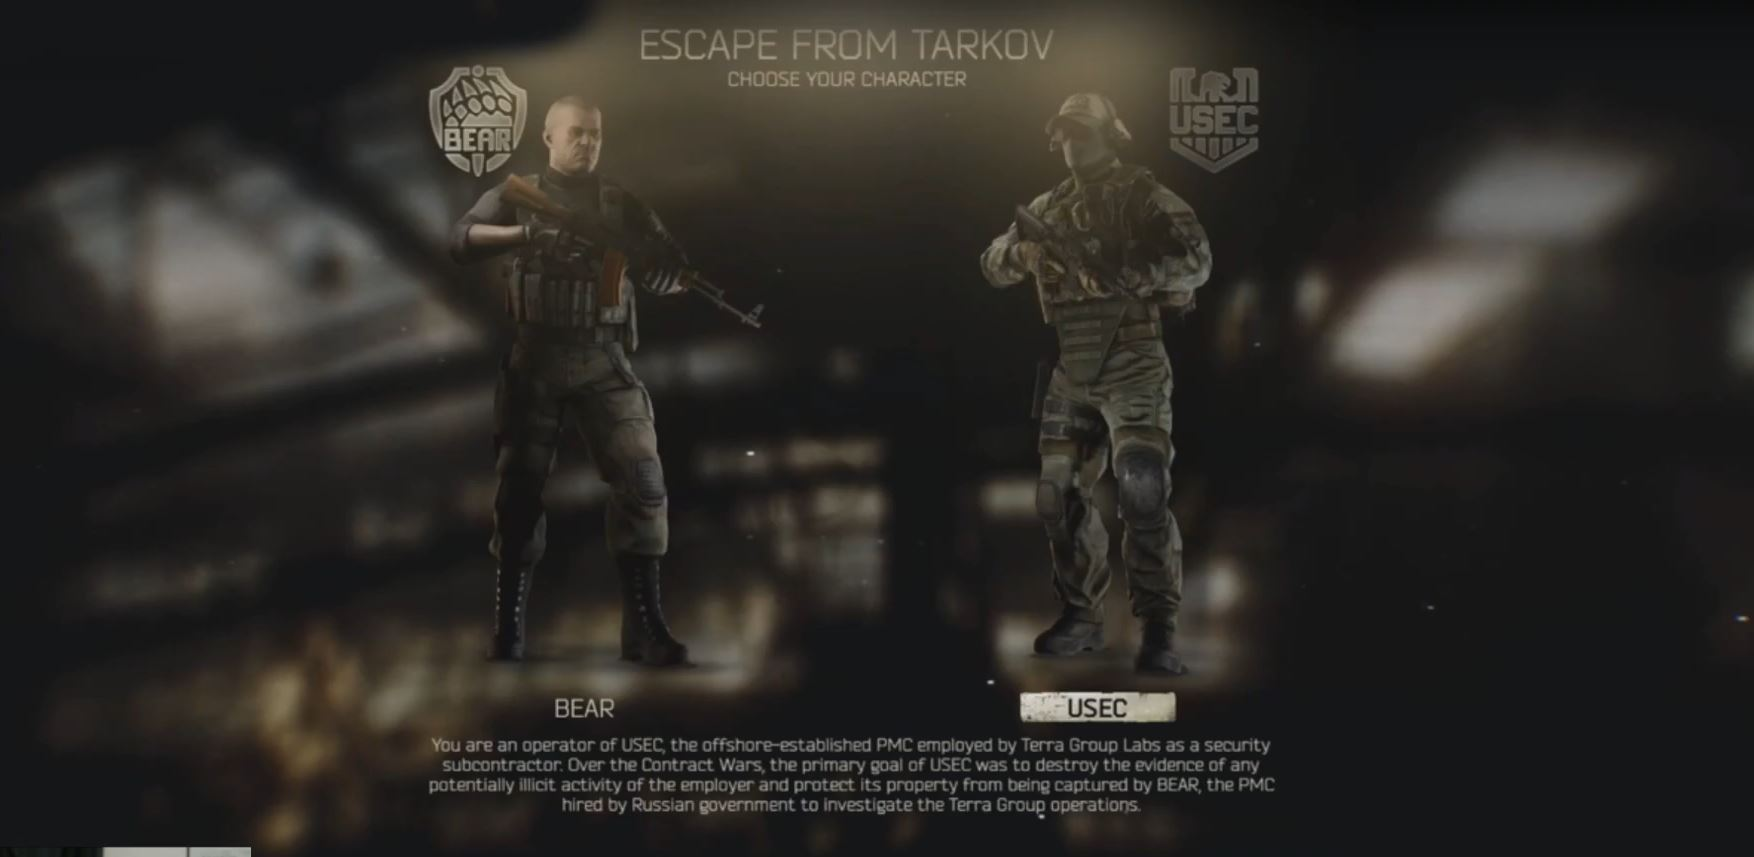 escape-from-tarkov-bear-or-oder-usec-unterschiede-differences